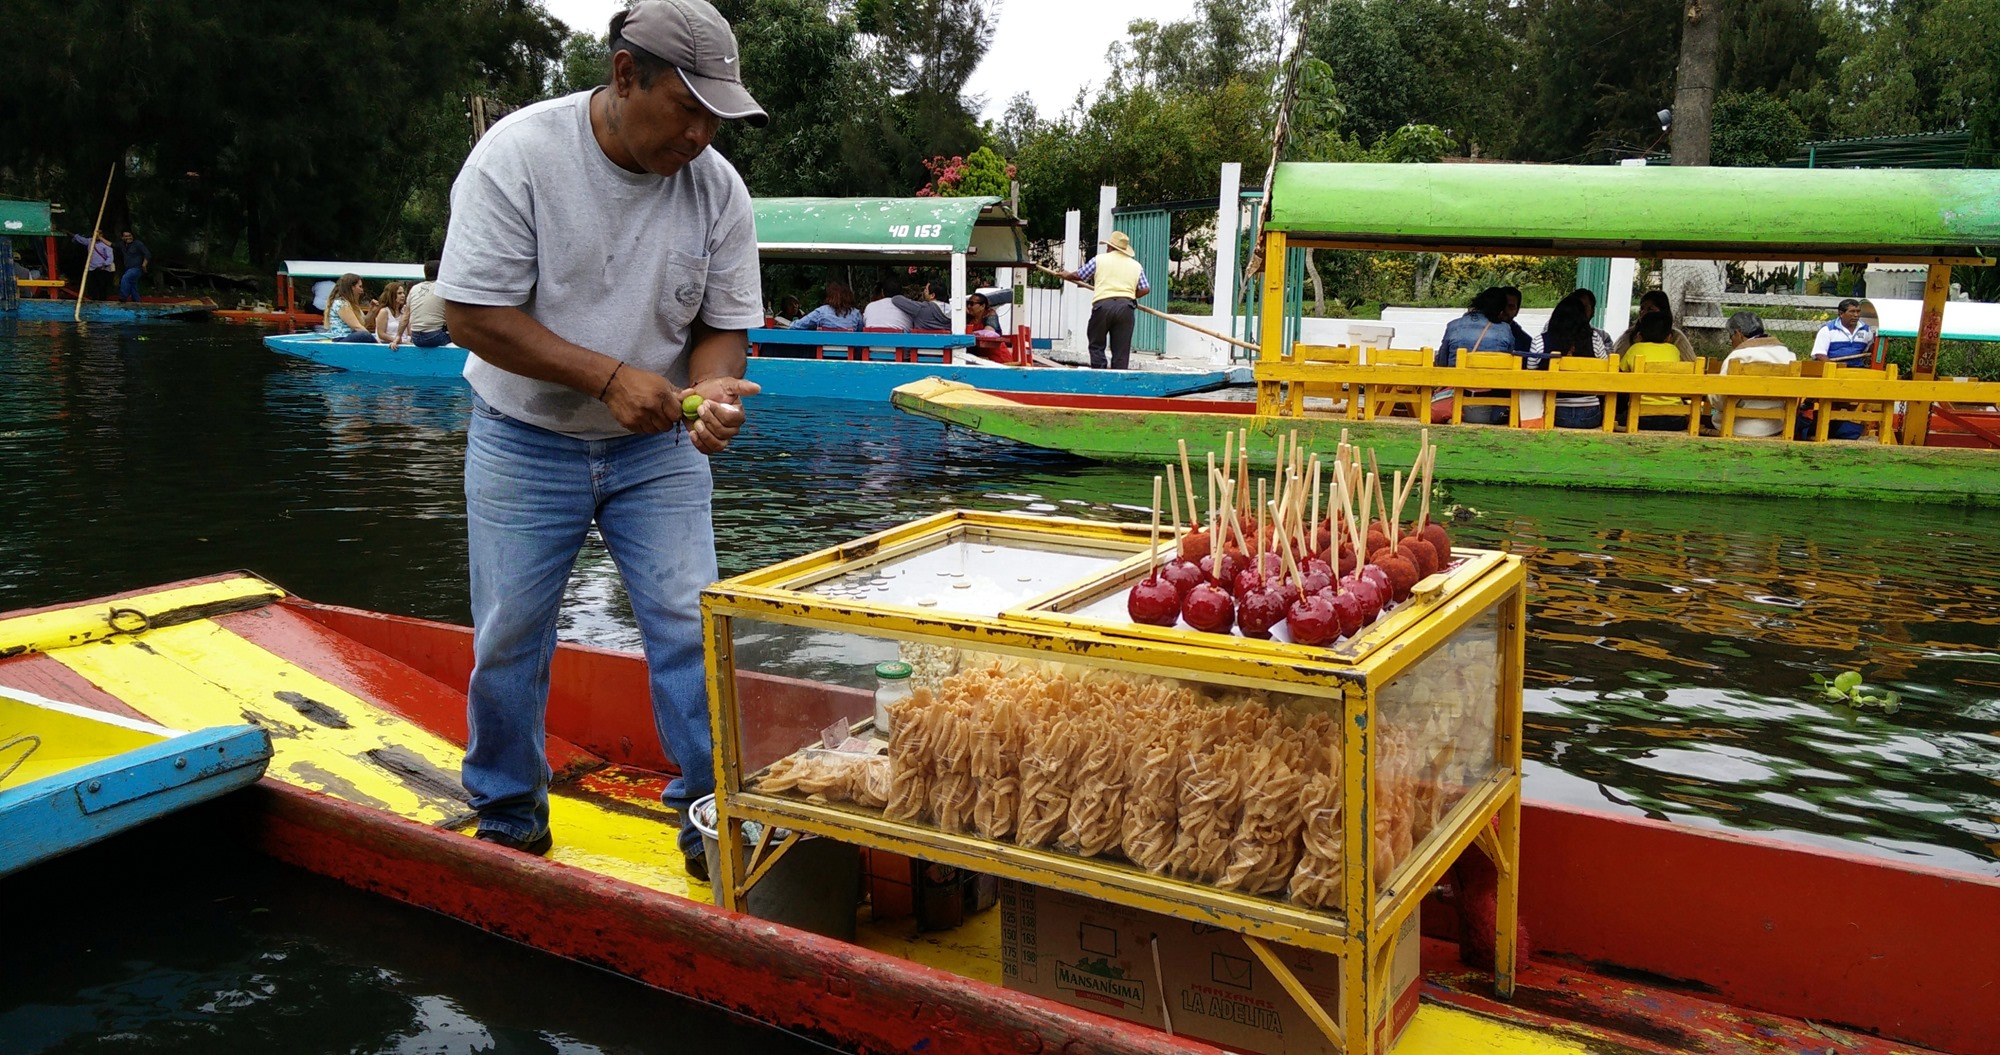 Ancient-canals-of-Xochimilco-Mexico-City-26.jpg